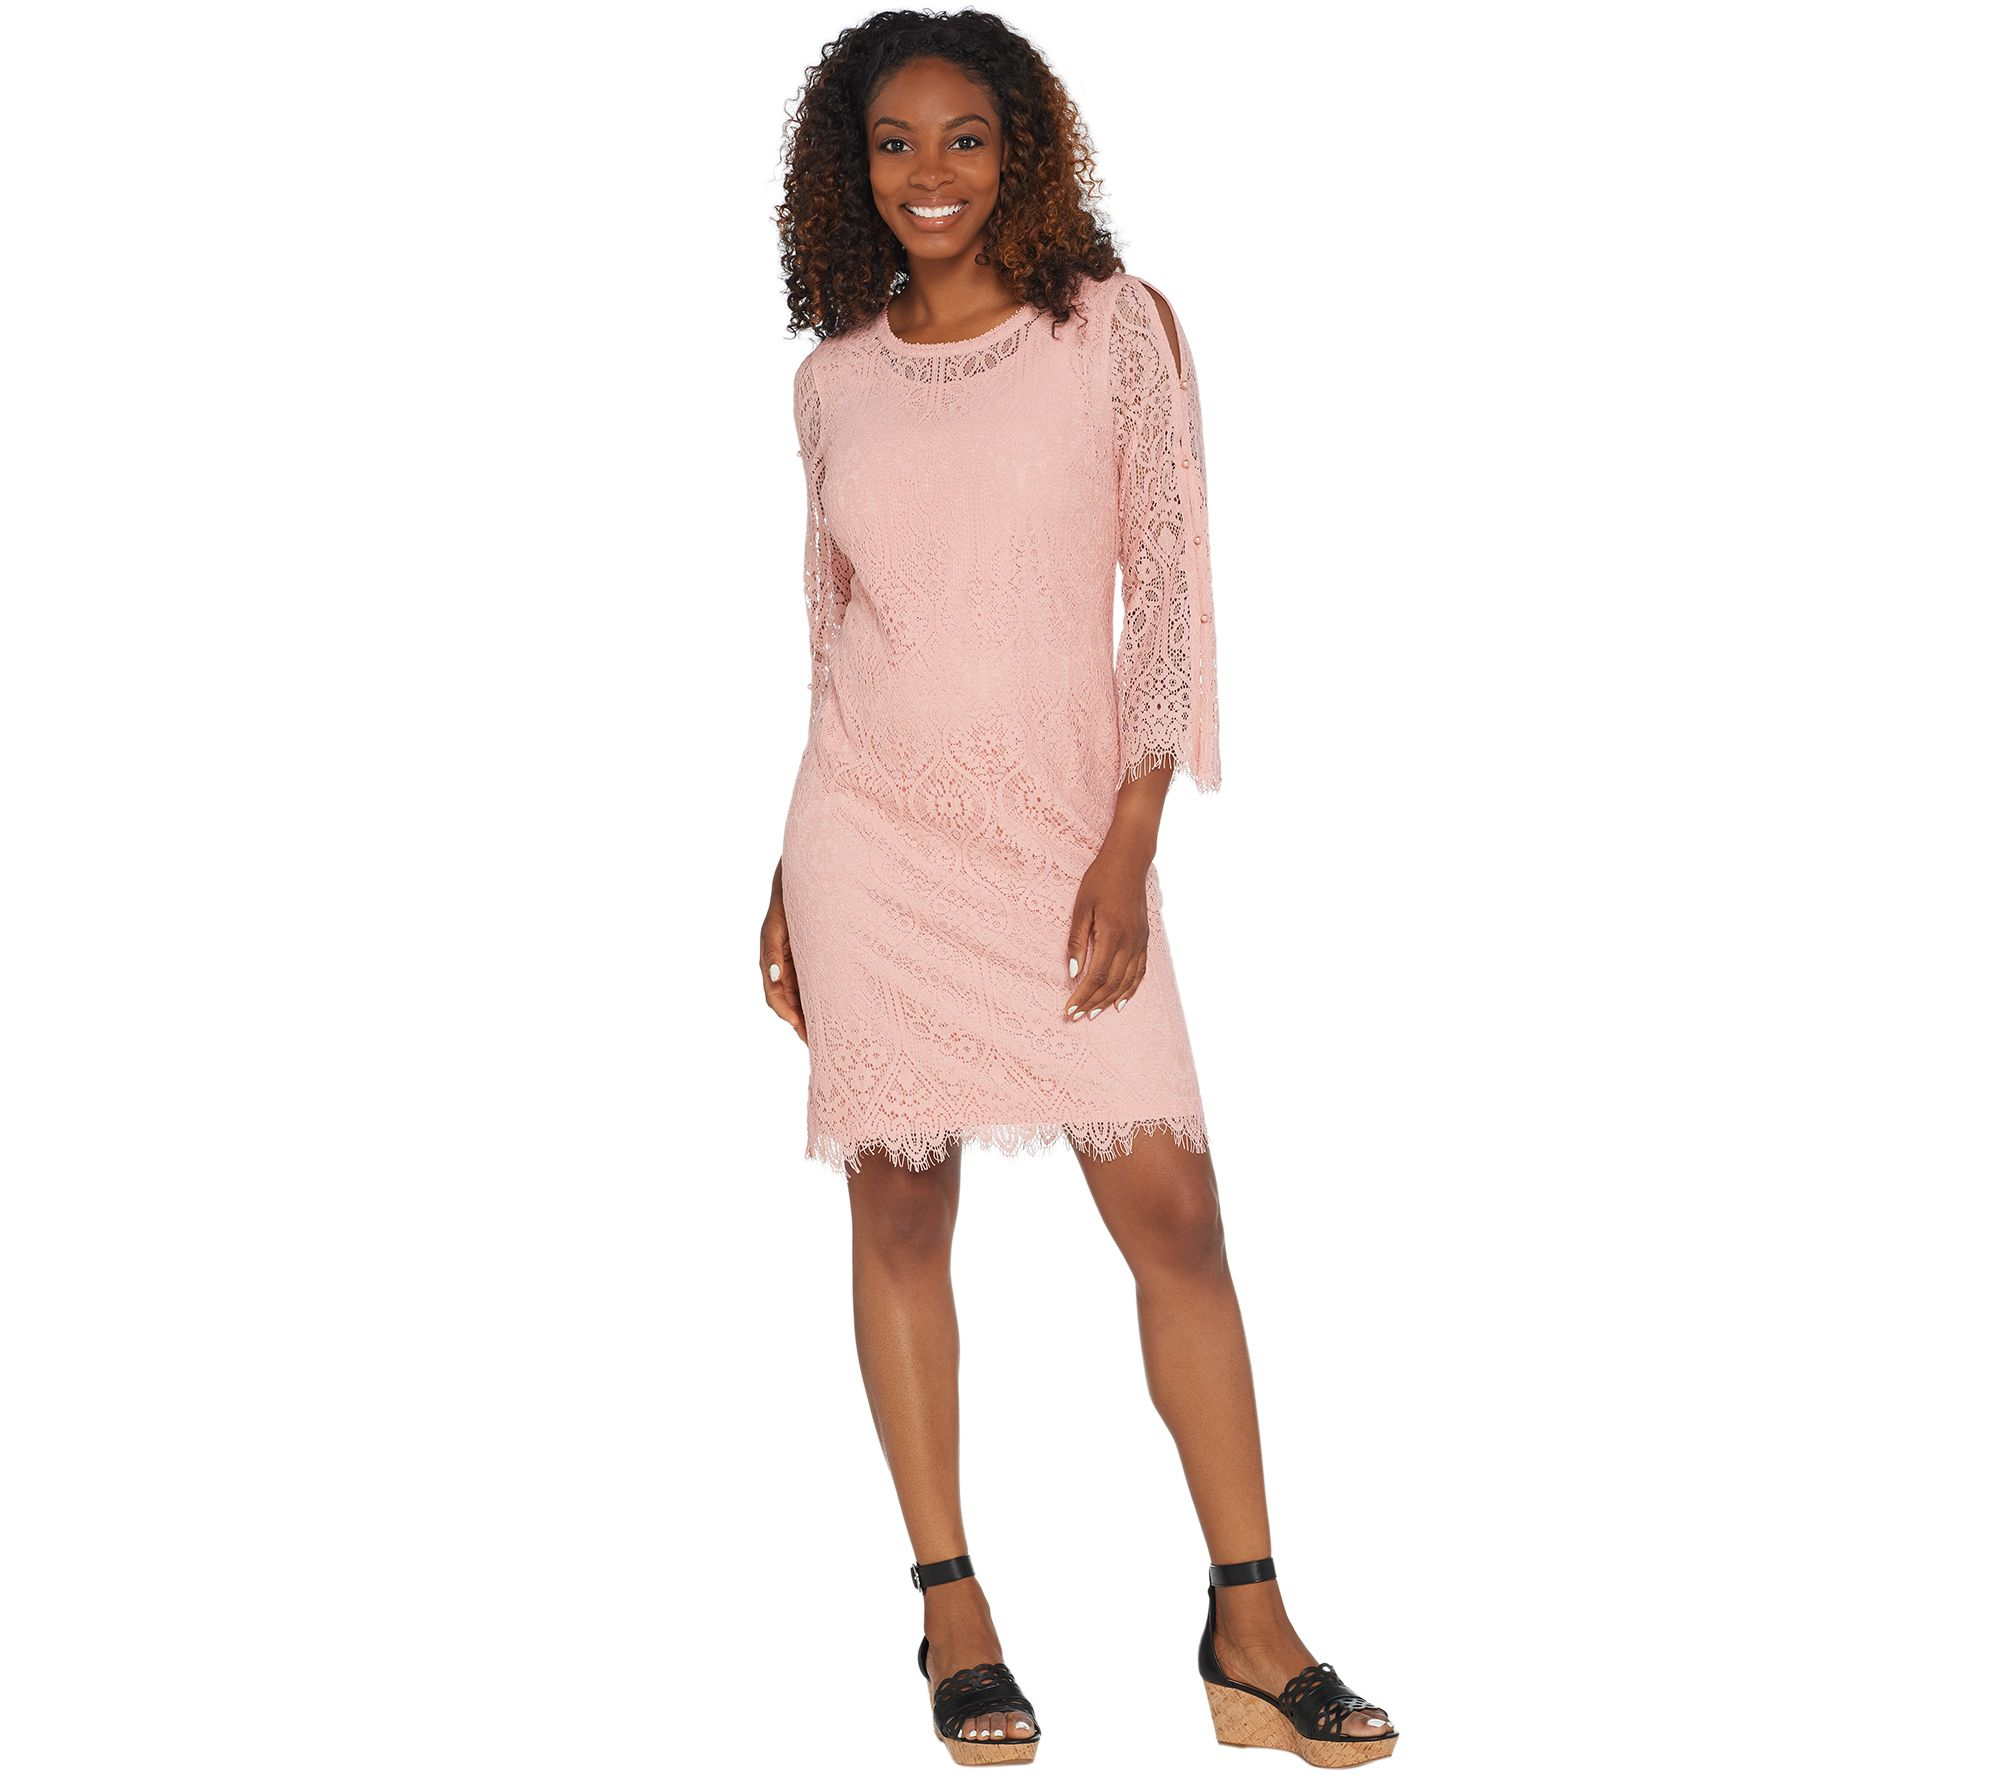 af659ccef1f Isaac Mizrahi Live! Lace Split Sleeve Dress with Faux Pearls - Page ...